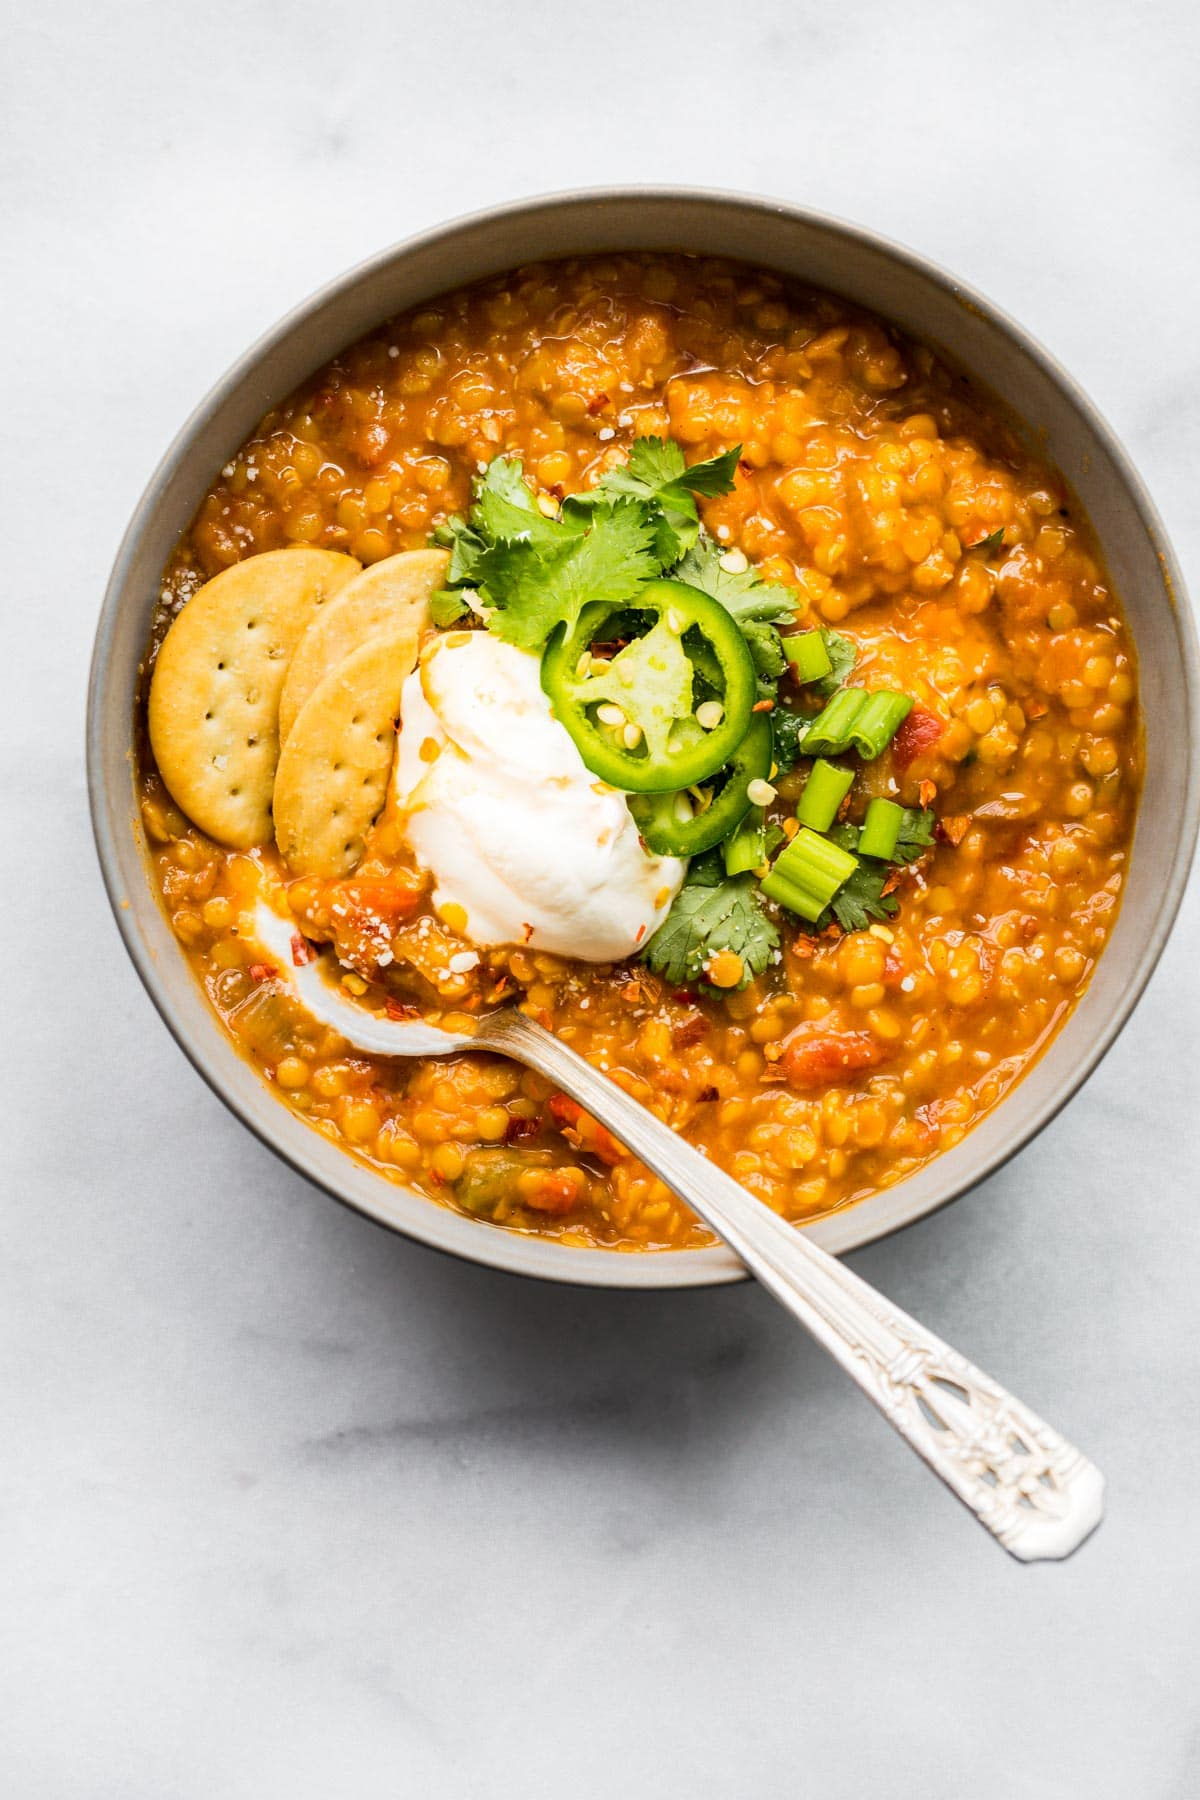 overhead photo: spoon in bowl of slow cooker chili garnished with crackers, jalapeno slices and sour cream